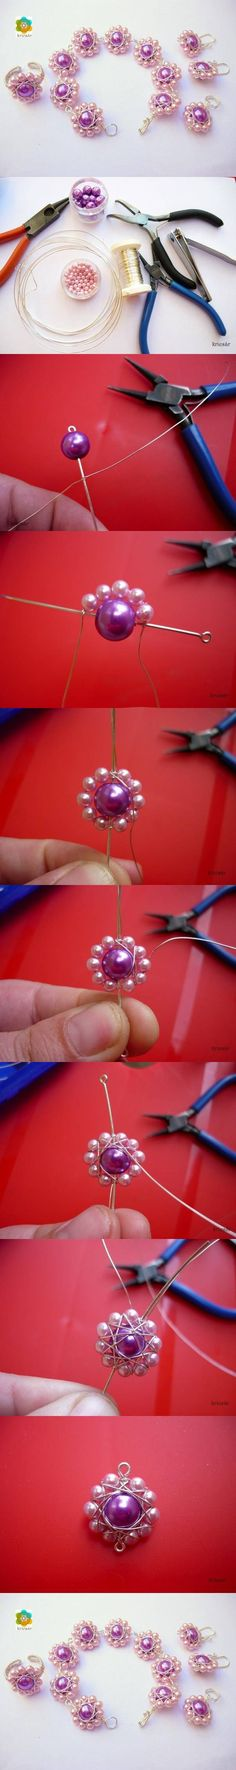 DIY Bead Flower Internet Tutorial DIY Bead Flower Internet Tutorial